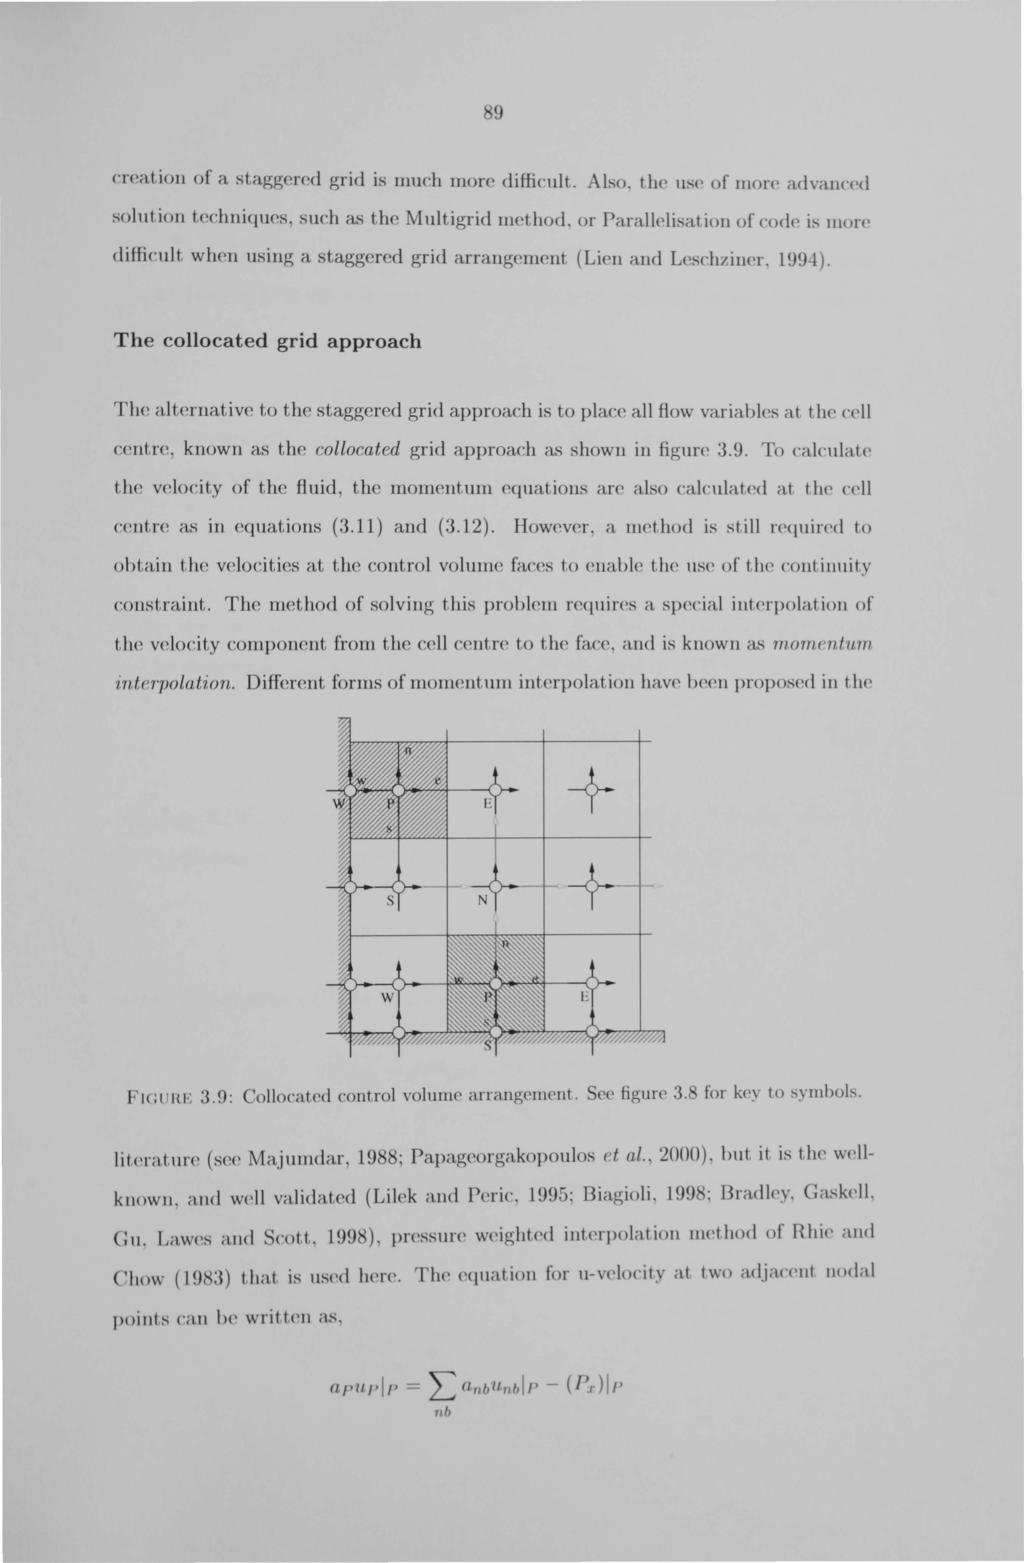 9 creation of a staggered grid is much more difficult. L o. th(' ls(, of more ad Val(' 'd solution techniques,. uch a.<) the Multigrid method, or Parall lisation of cod i.